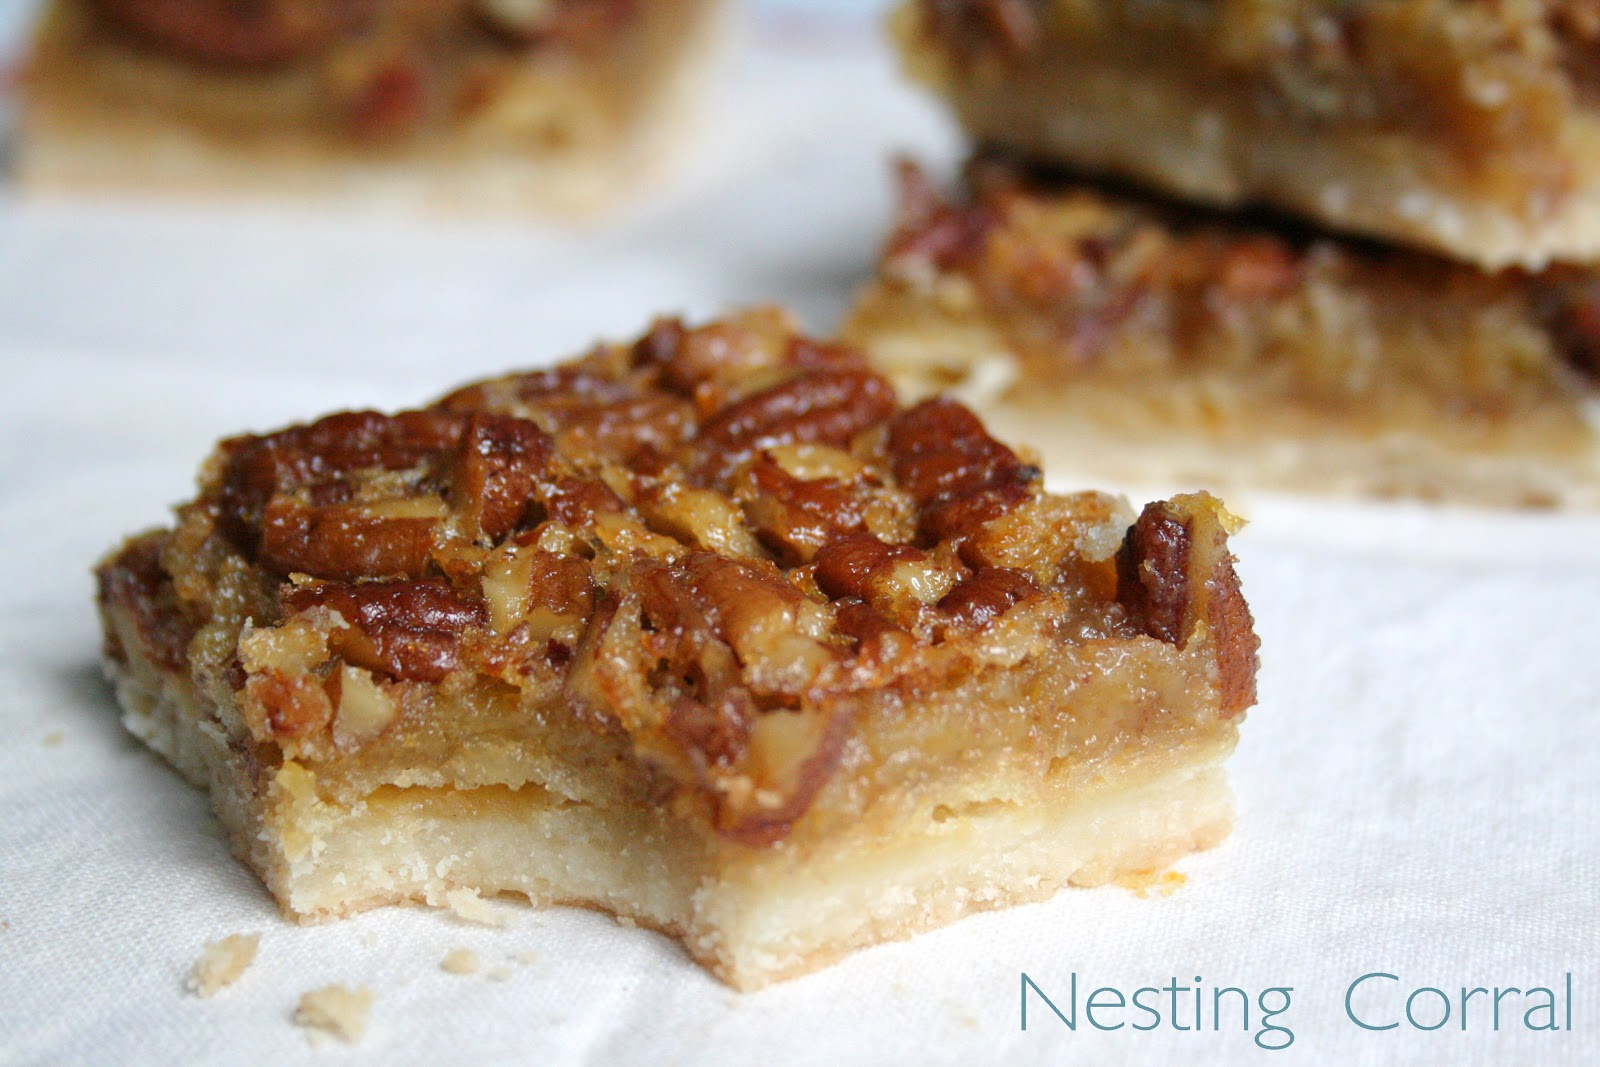 The Nesting Corral: Pecan Pie Bars